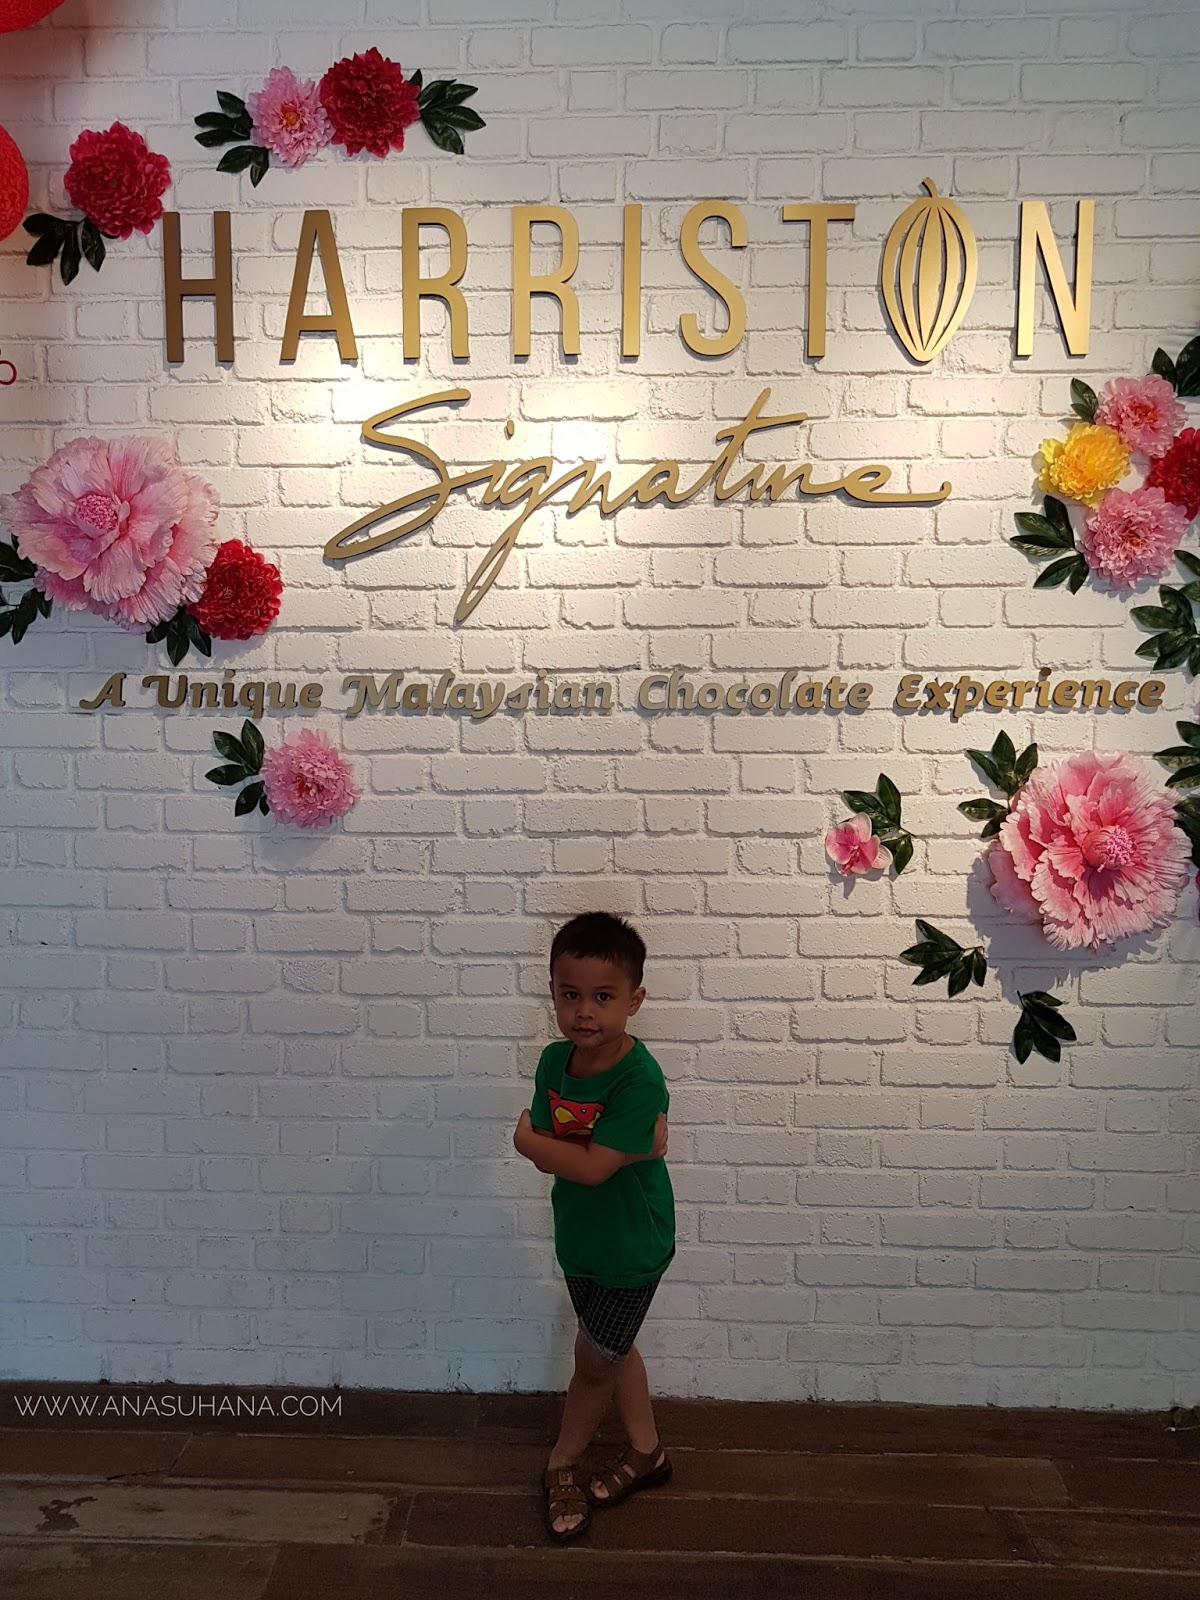 Harriston Signature